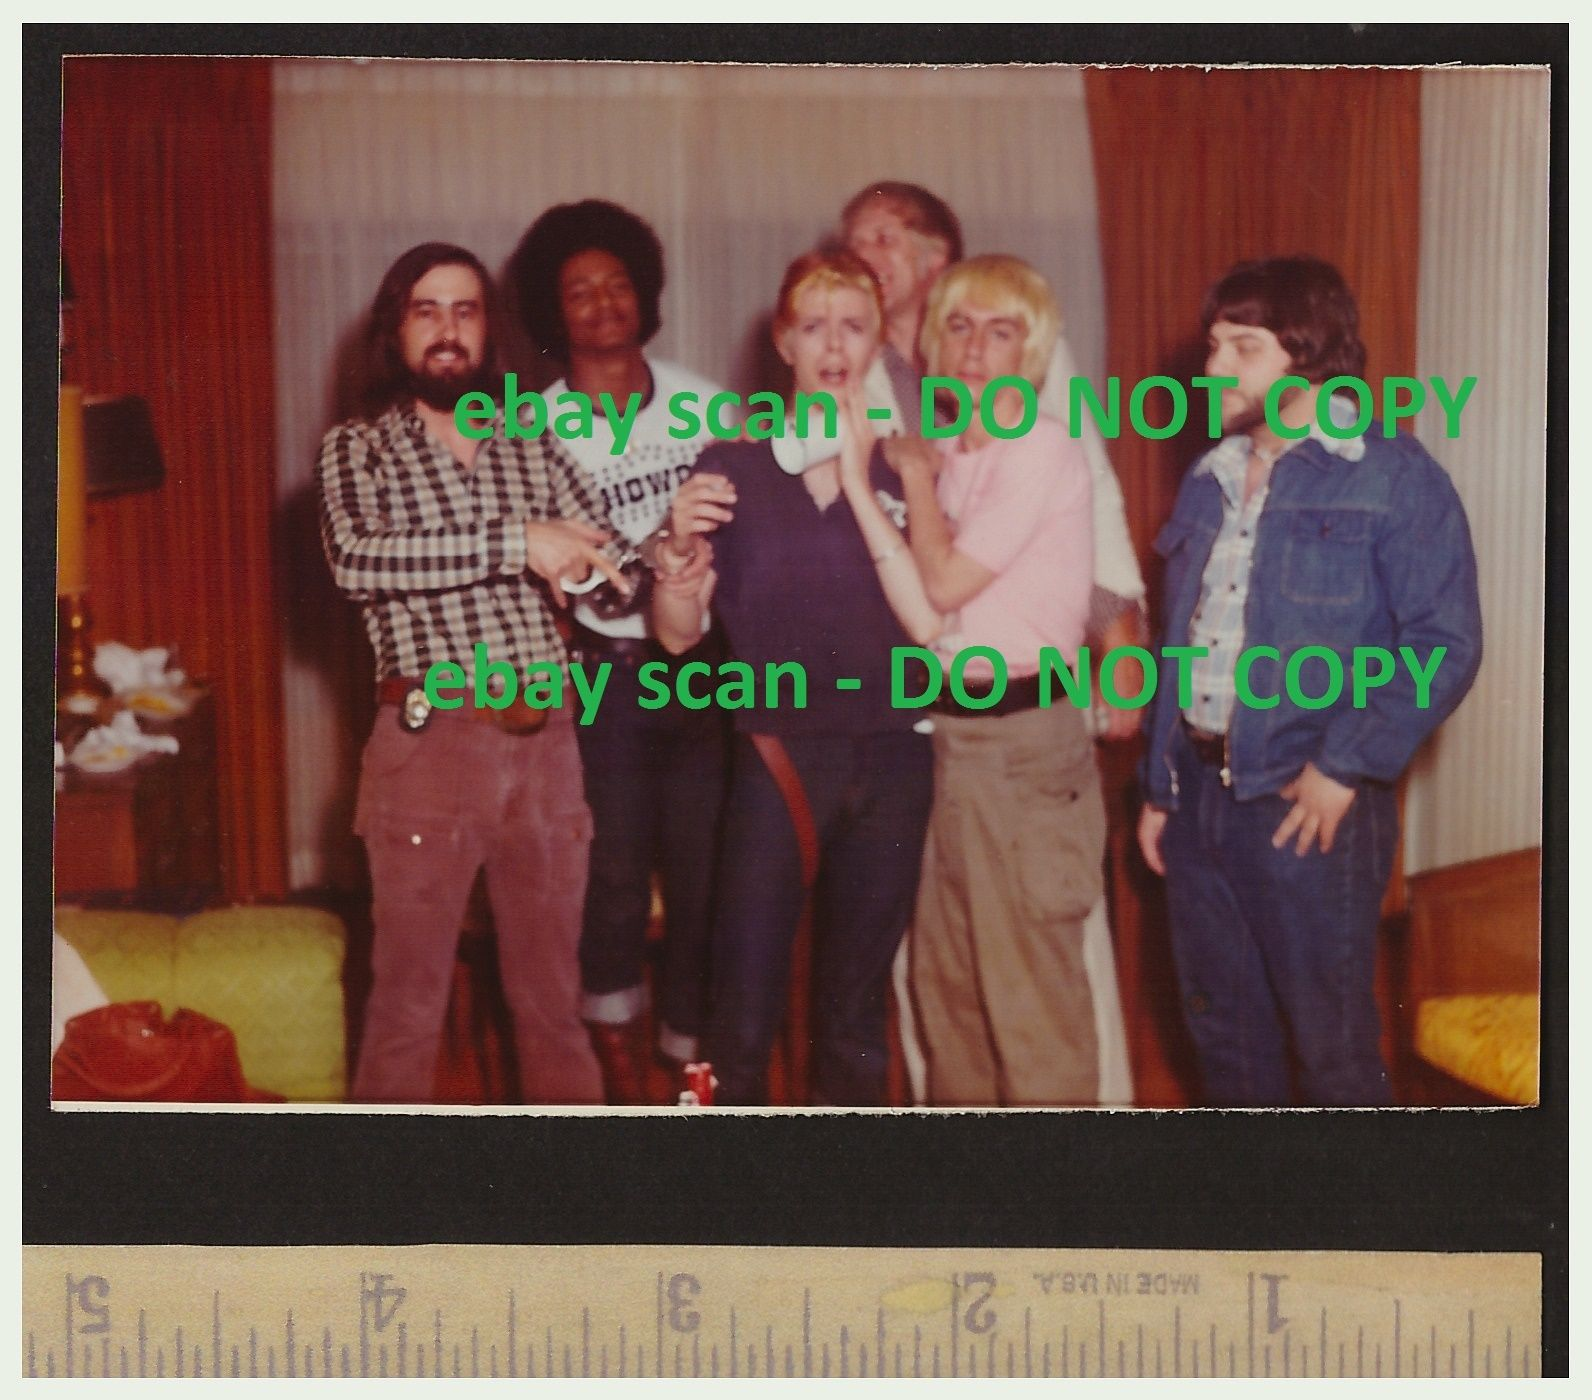 Photo of David Bowie arrest in Rochester NY for sale on eBay.